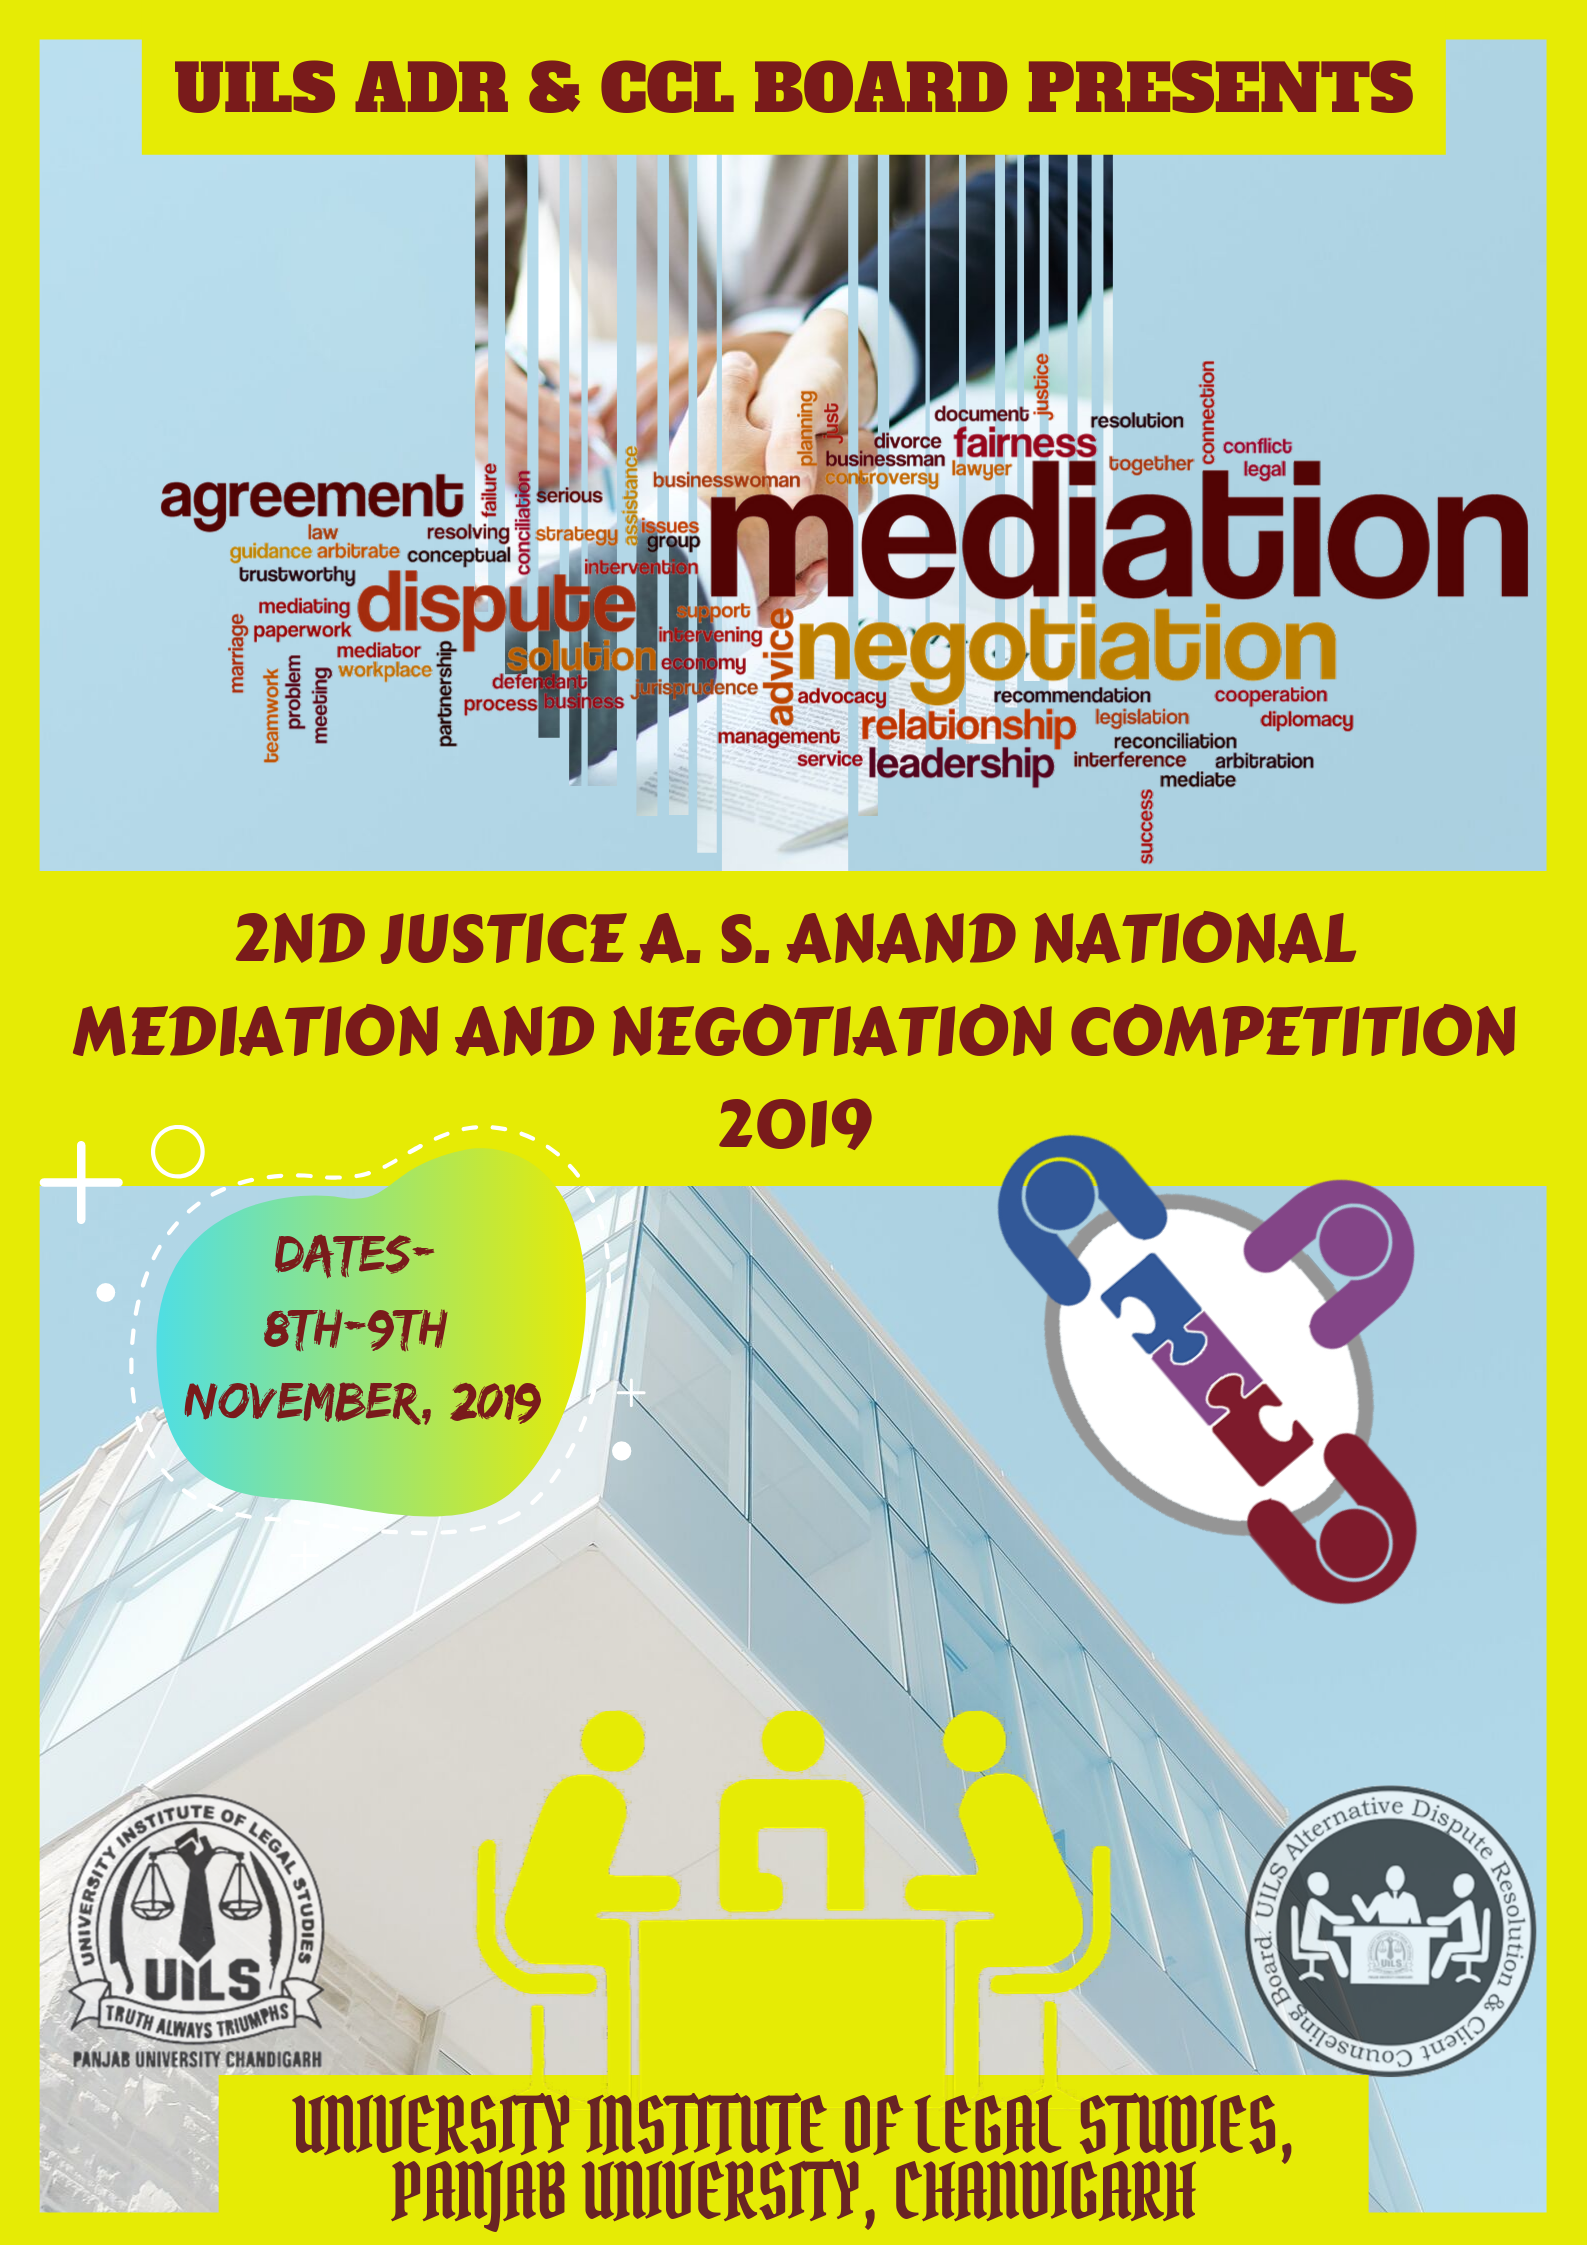 Justice A S Anand Meditation and Negotiation Competition at UILS, Panjab University